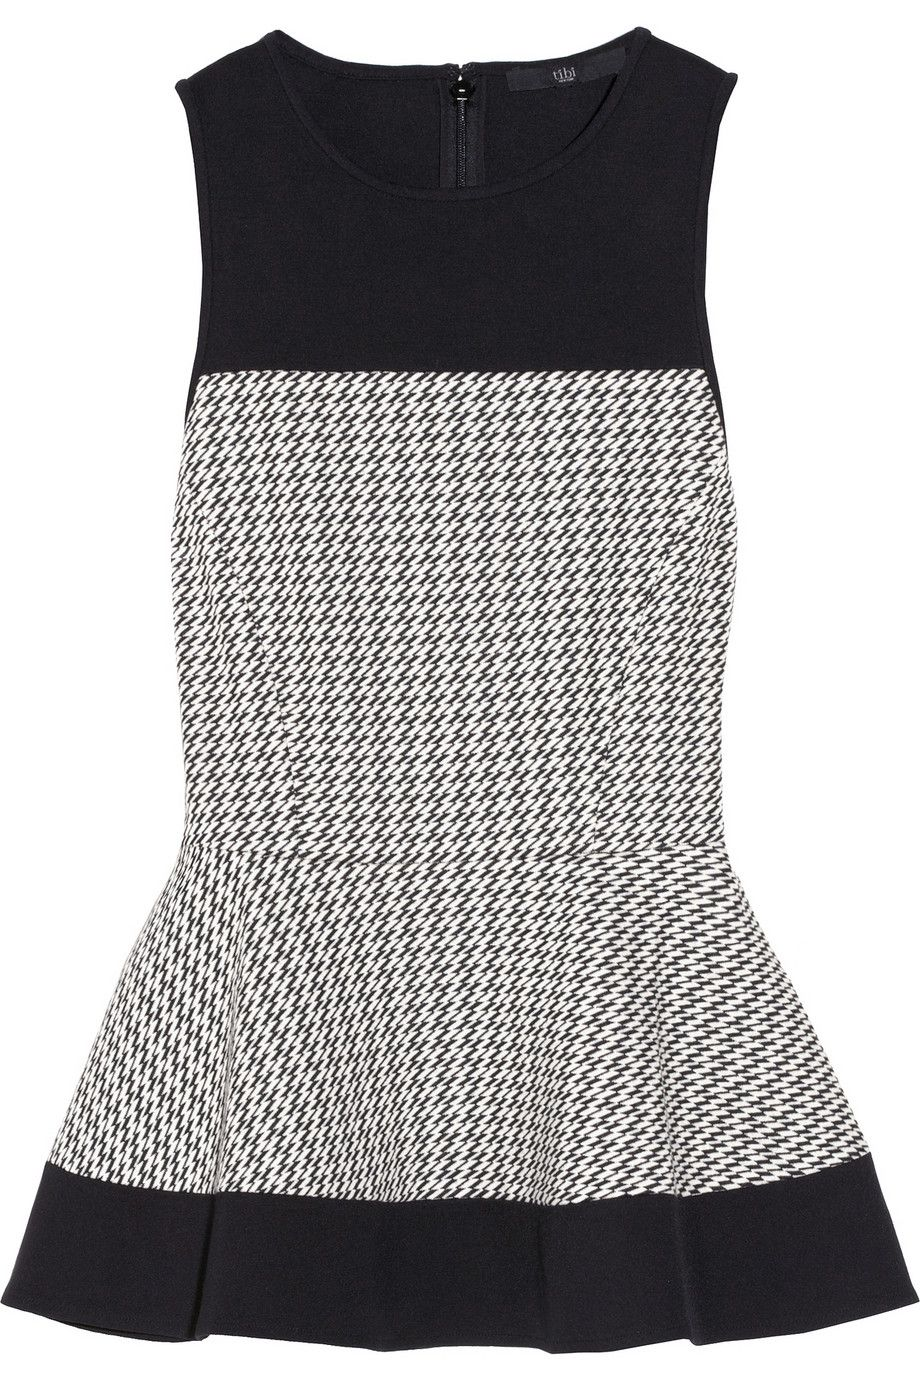 Women can wear houndstooth, too! This peplum #Tibi top is a perfect example.